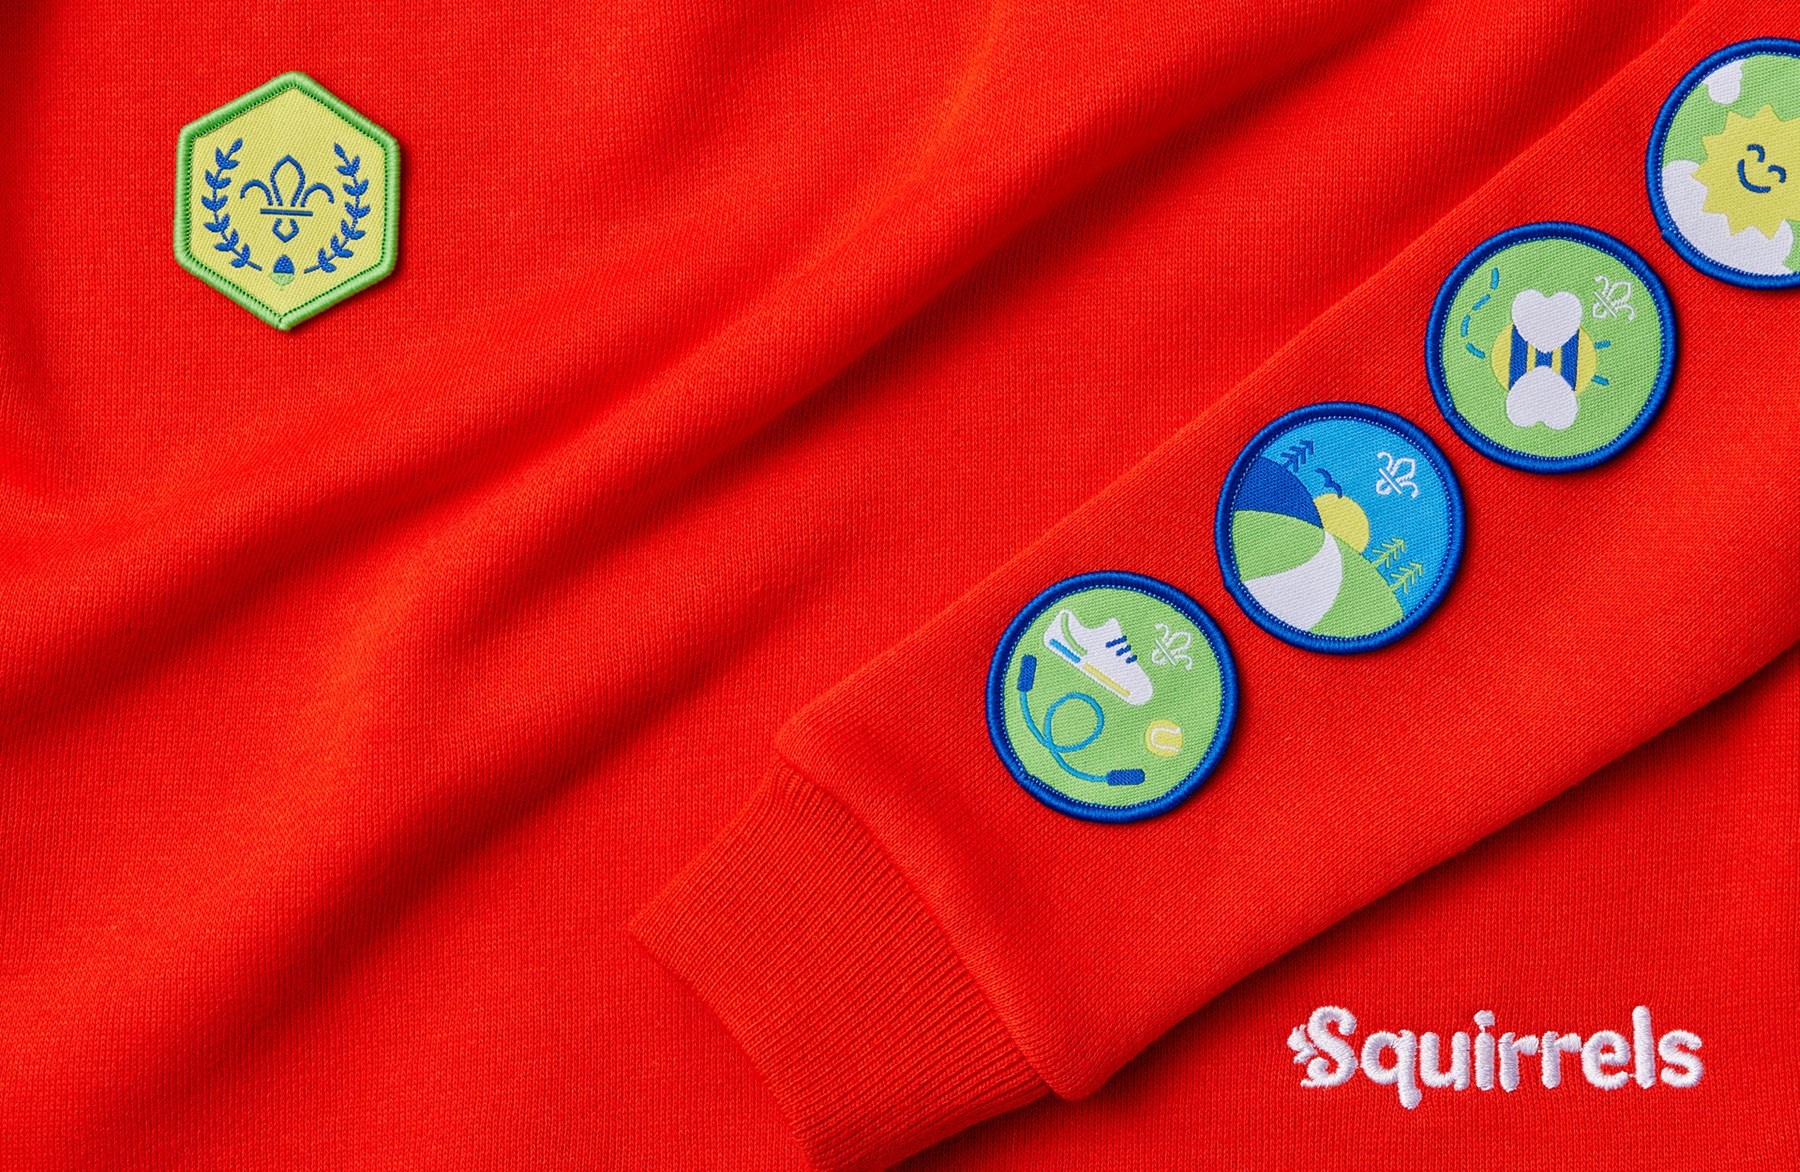 The Be Active, Explore Outdoors, Go Wild and Feel Good Activity Badges along the arm of a red Squirrel Scout jumper, with the Chief Scout's Acorn Award across the heart.